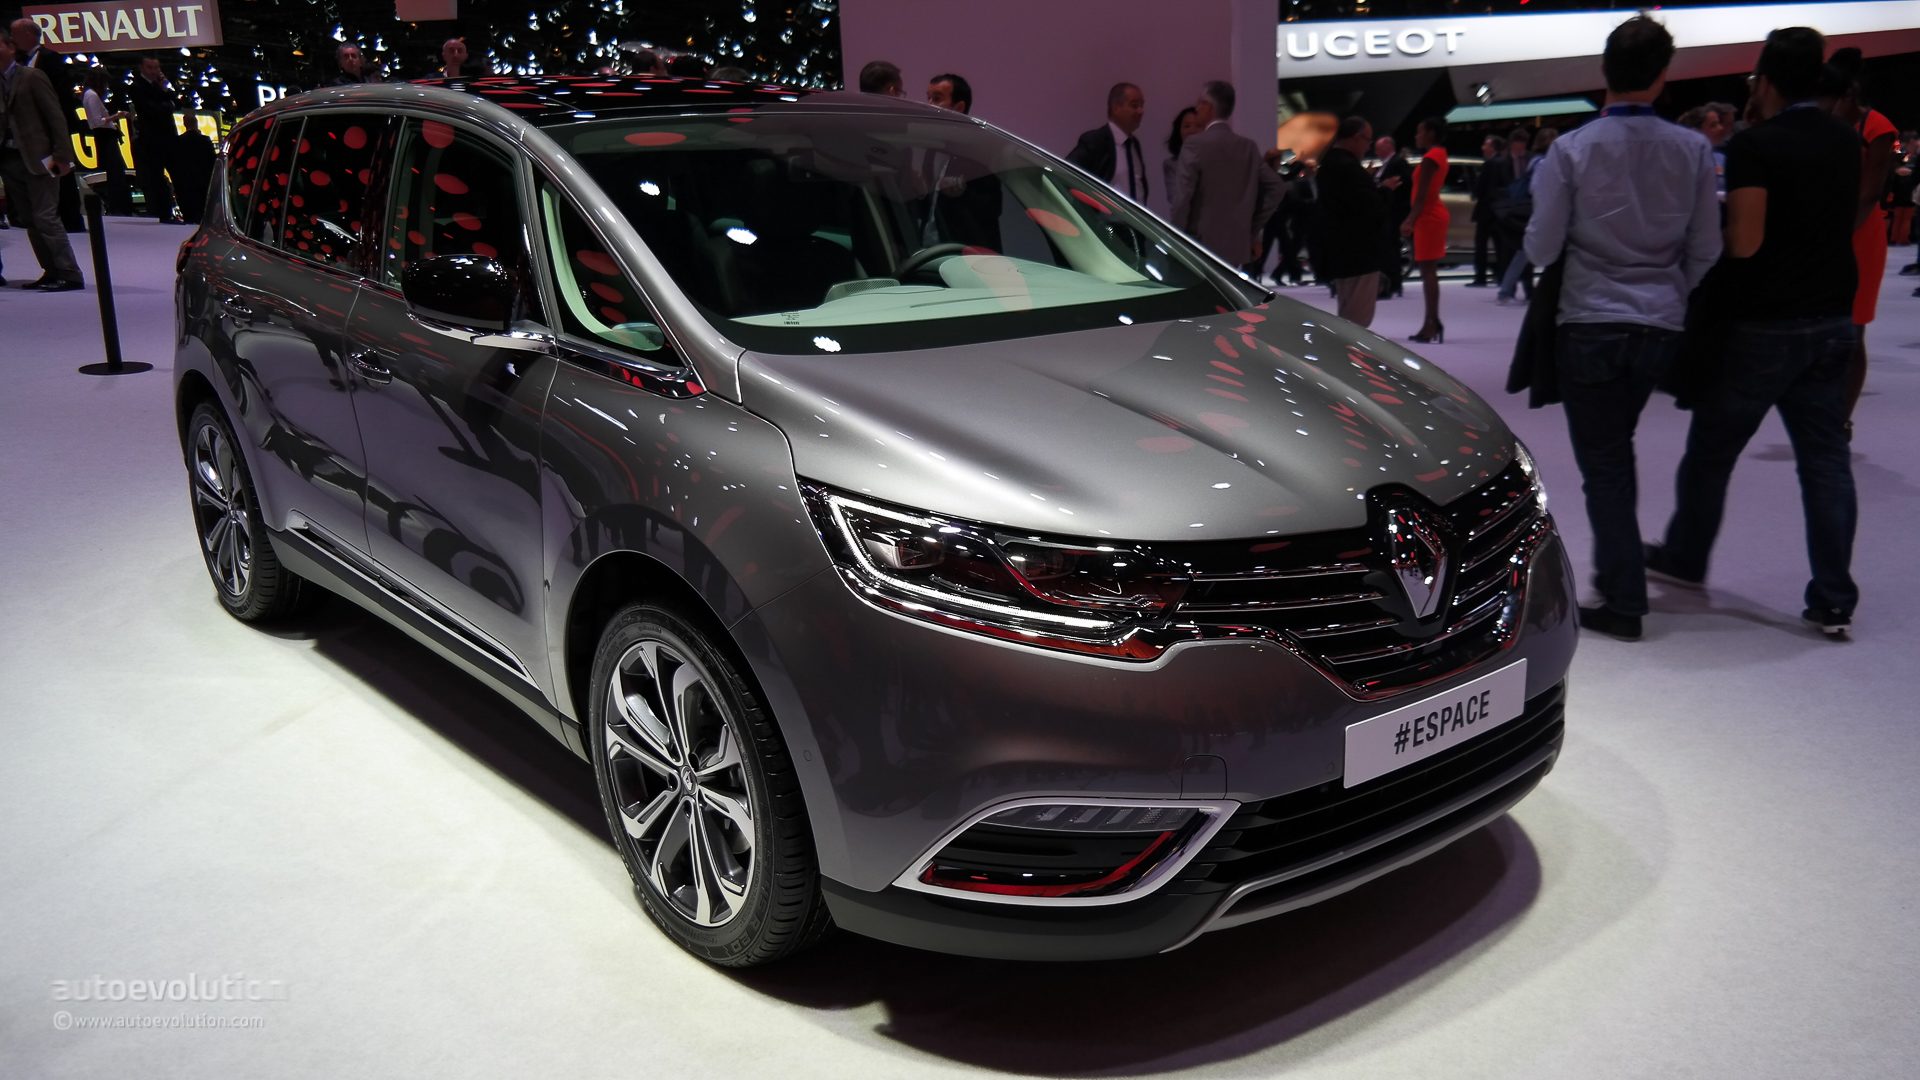 2015 Renault Espace Configurator Launched  Prices Start At